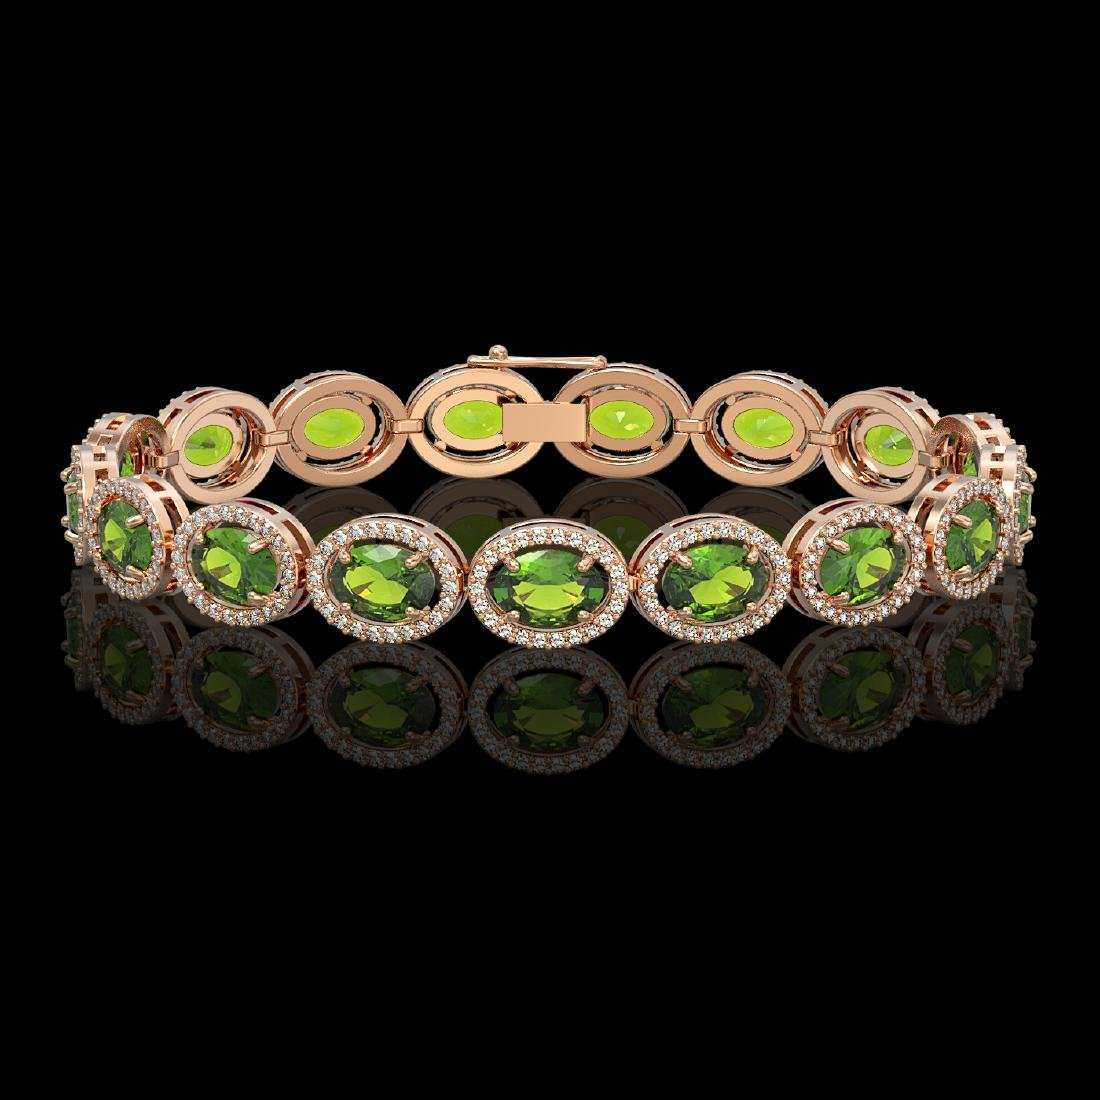 21.13 CTW Peridot & Diamond Halo Bracelet 10K Rose Gold